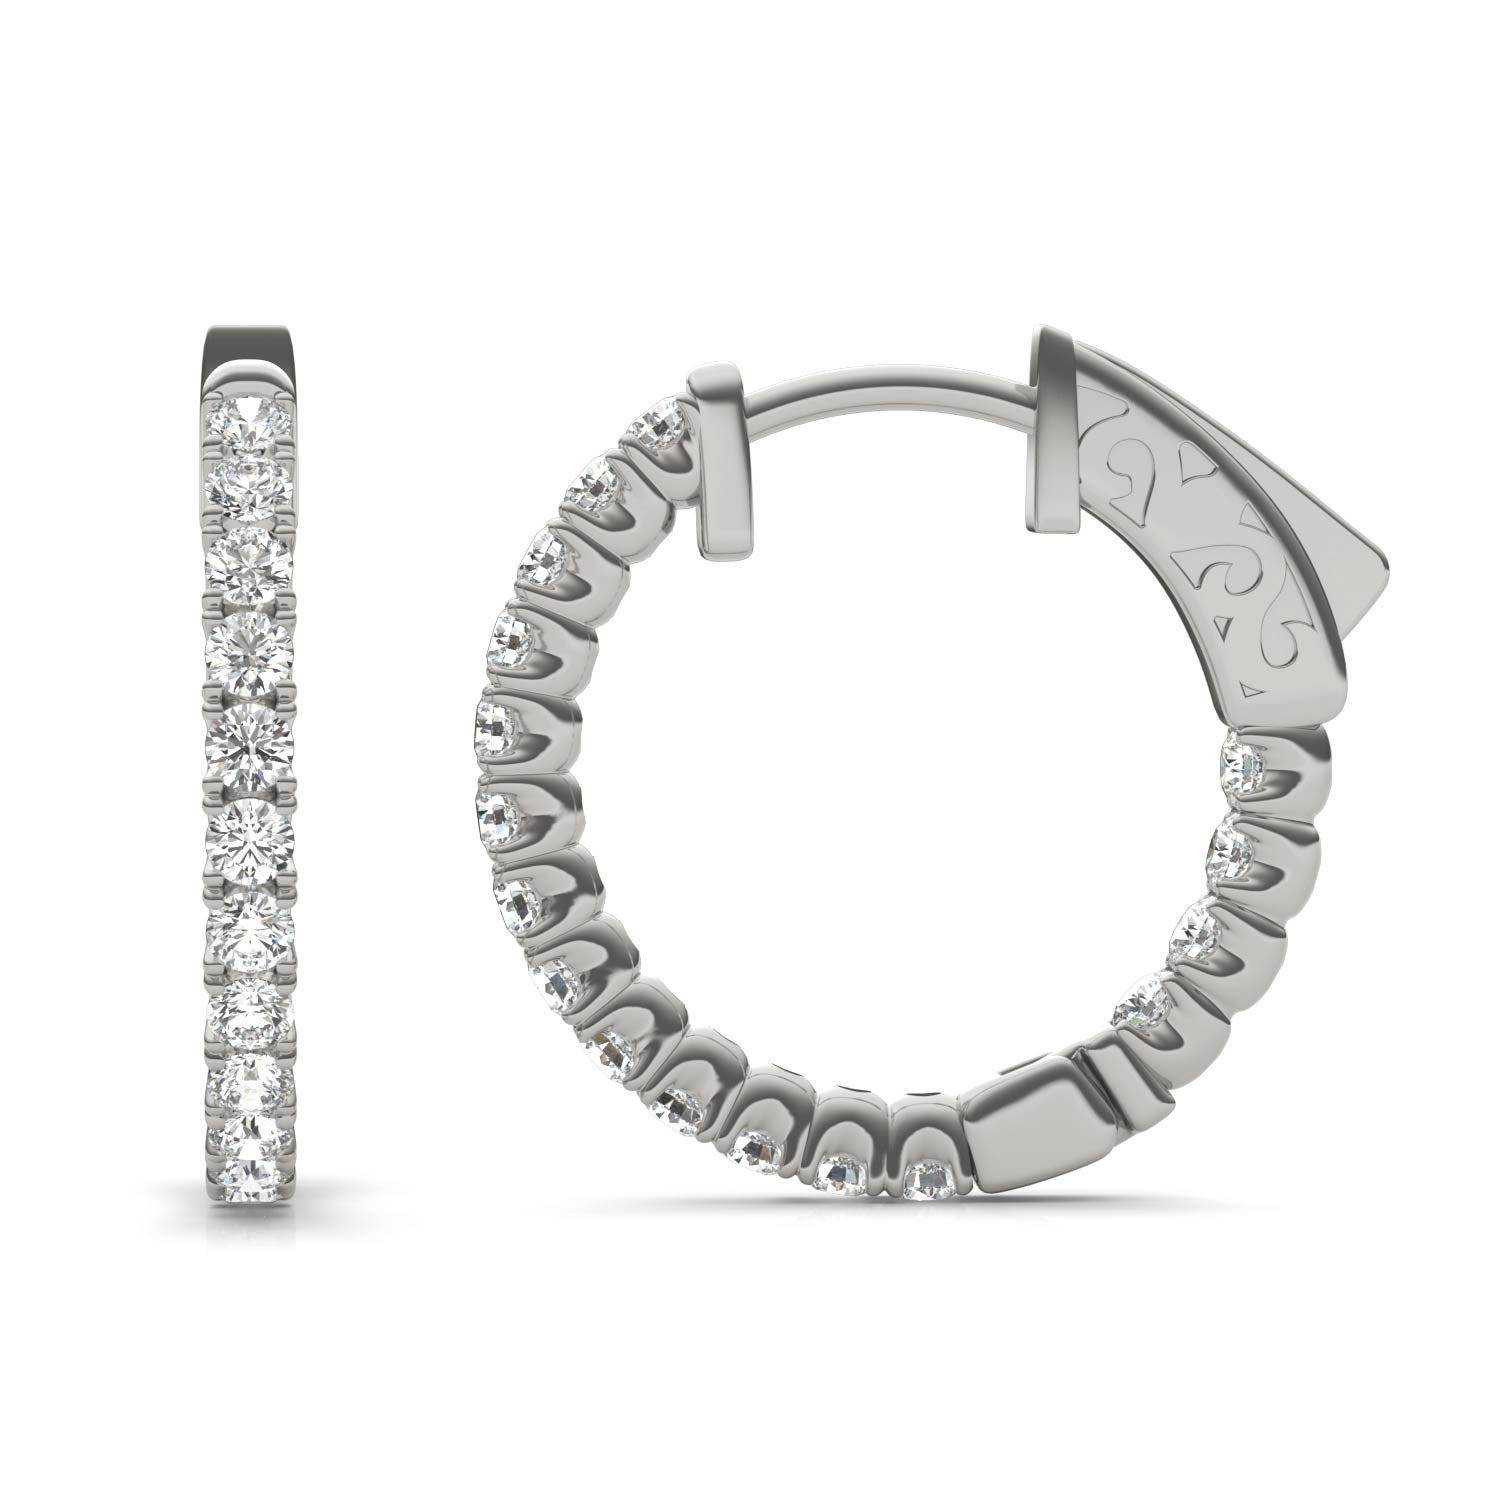 Charles & Colvard Hoop Earring in 14K White Gold, 2/3 CTW Round Caydia Lab Grown Diamond - VS1 Charles & Colvard  - White Gold - Size: One Size